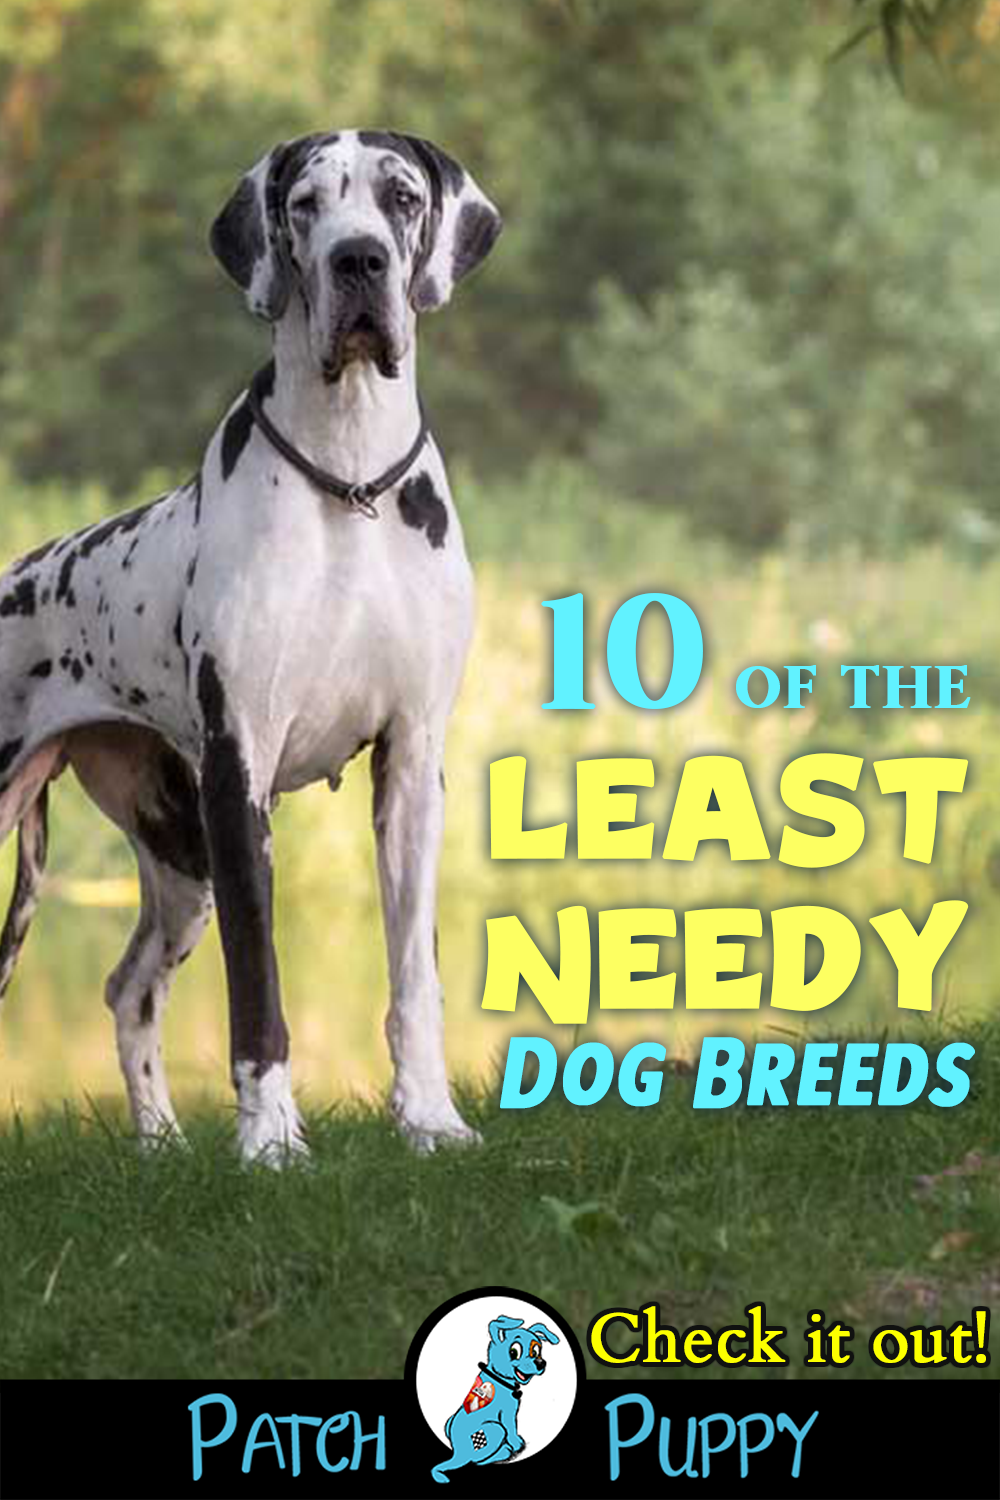 10 of the Least Needy Dog Breeds You'll be Surprised